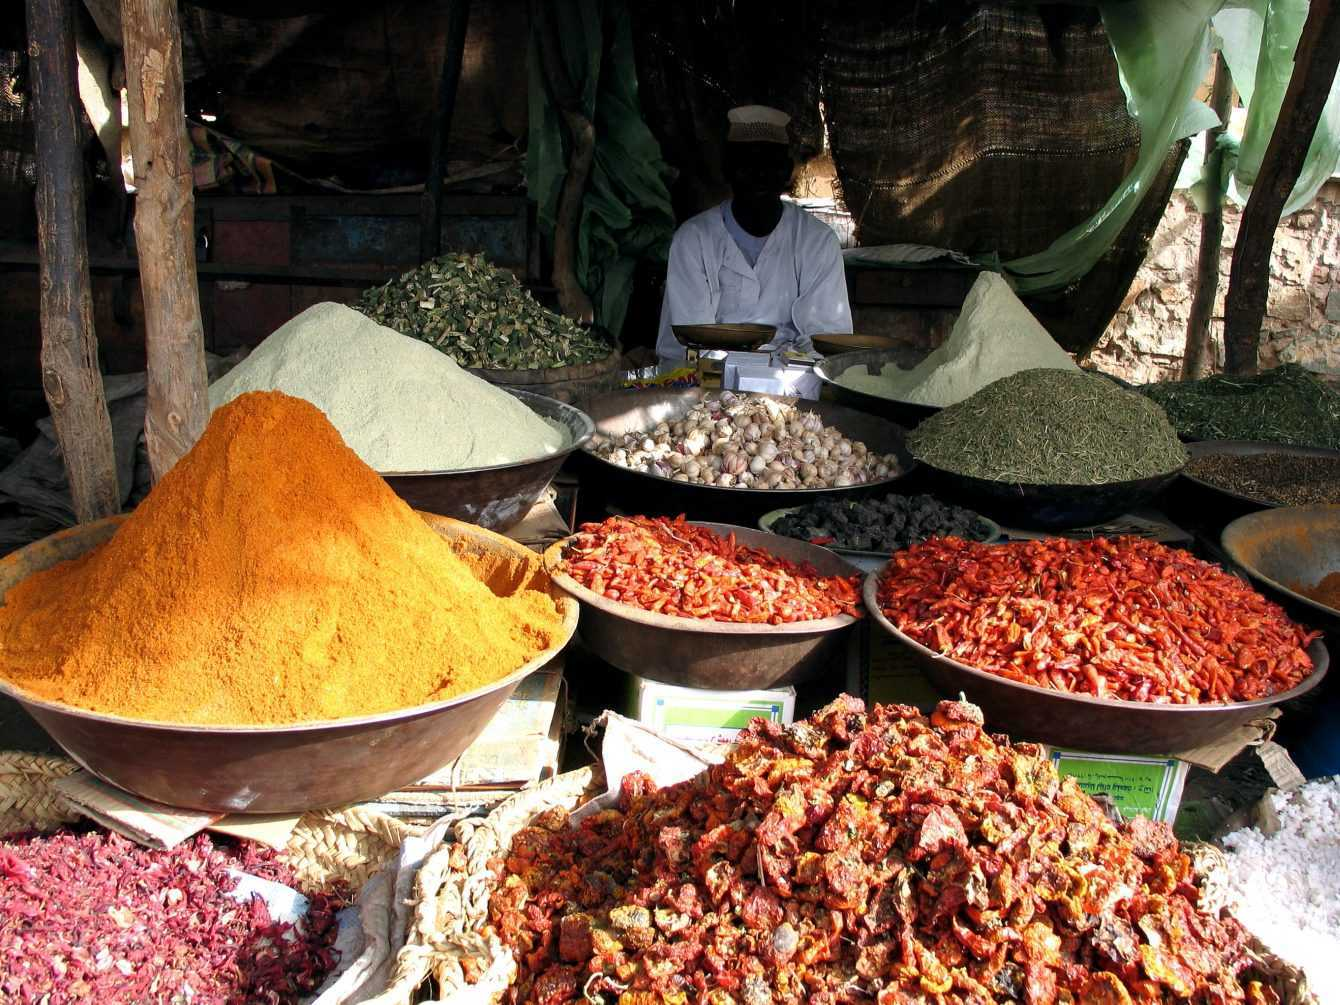 Spices: an ancient trade discovered from archeology